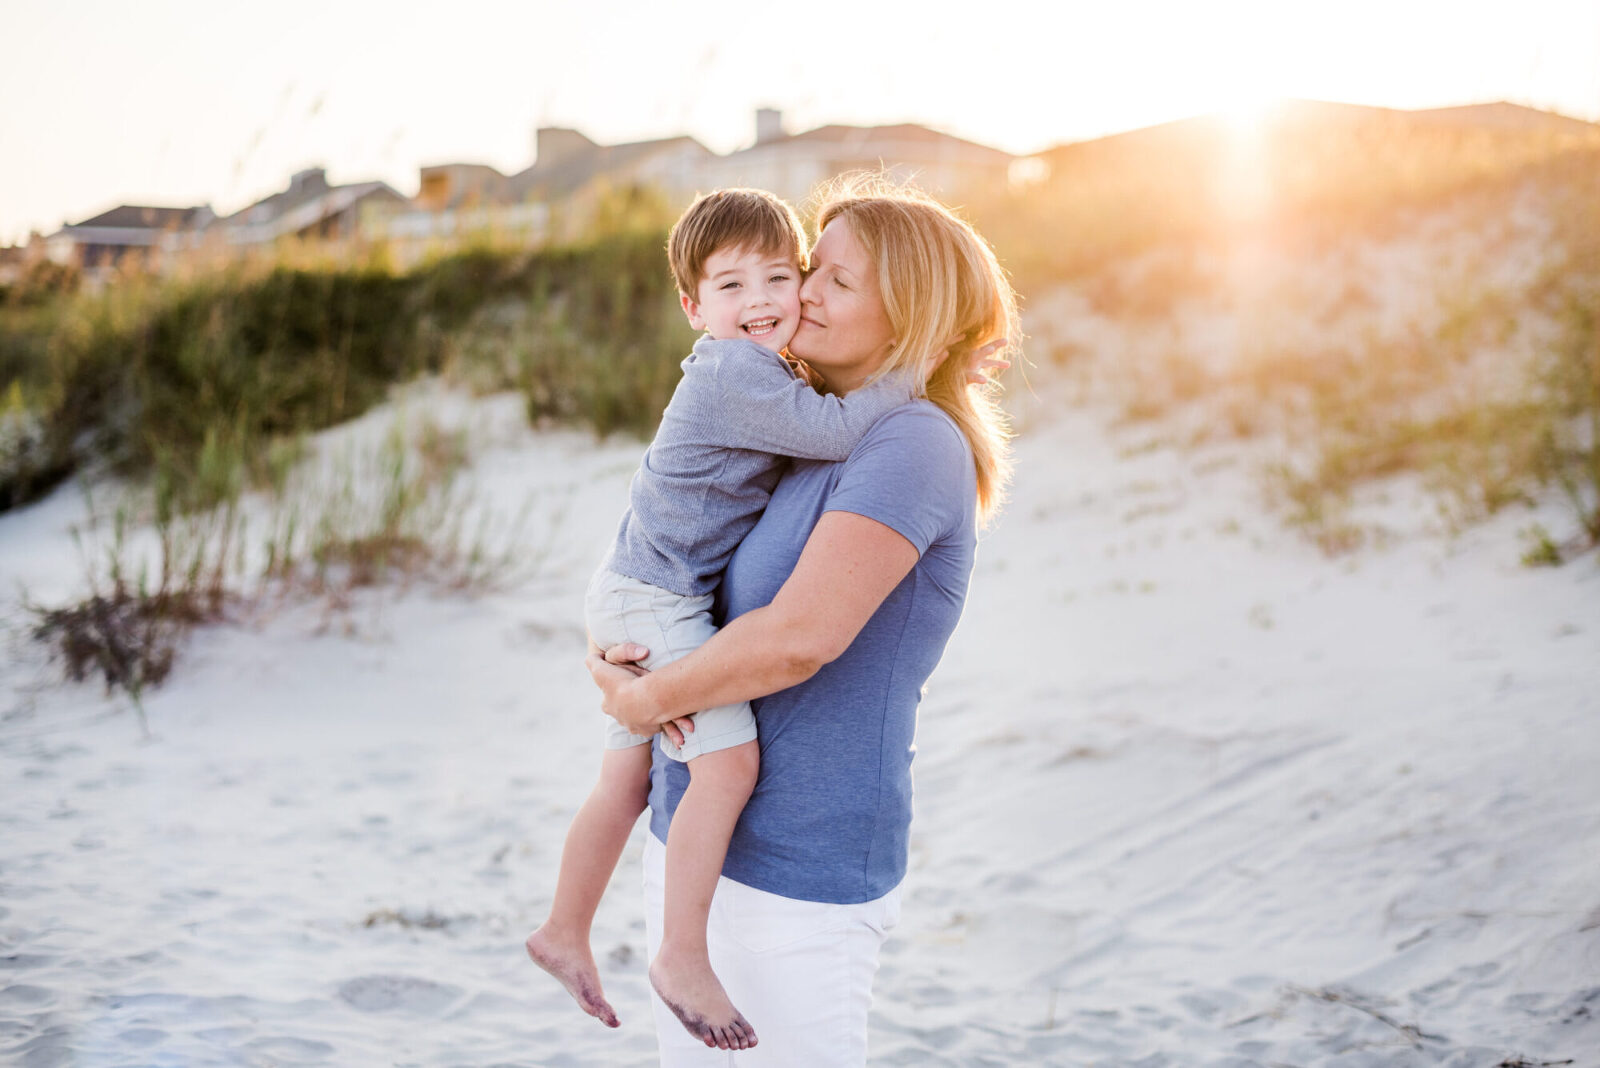 mom and son hugging at beach